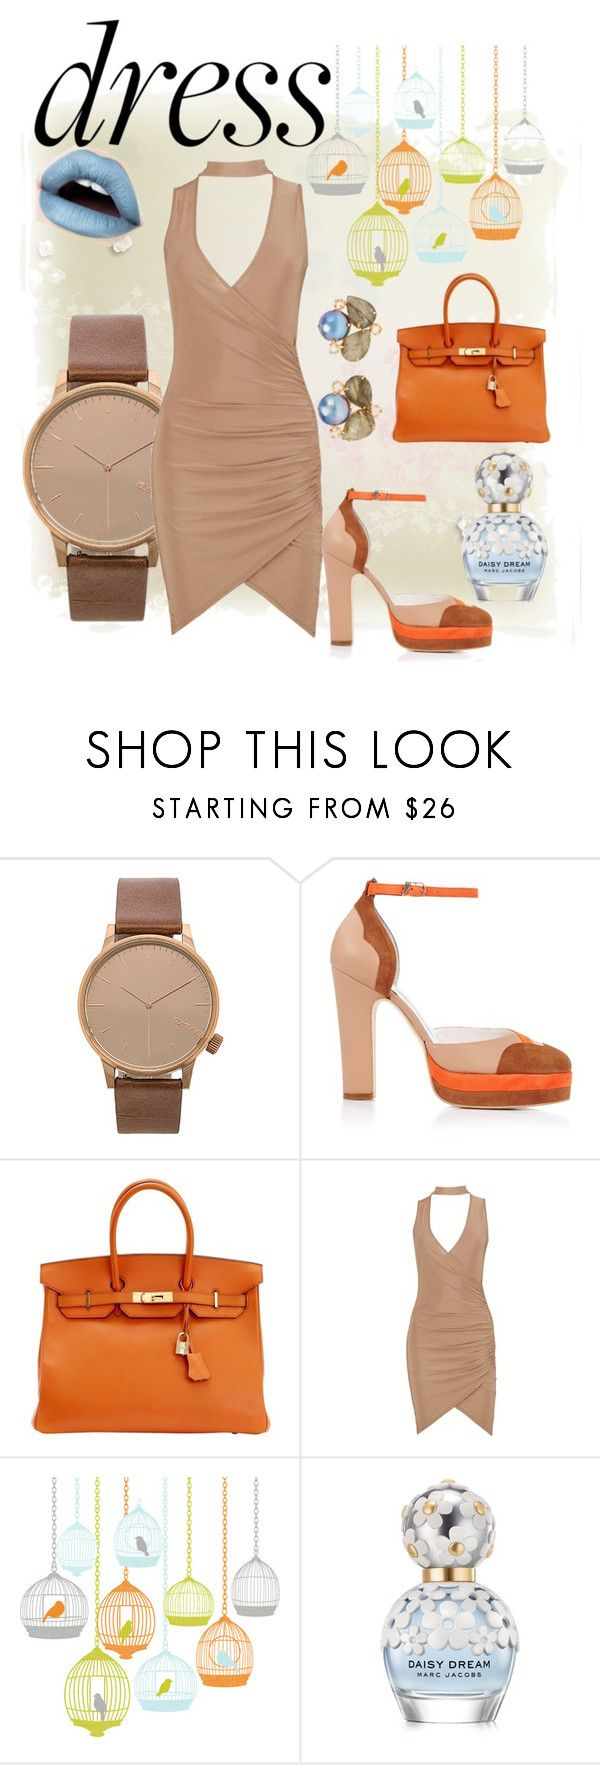 """""""Choker Dress"""" by thebeautyko ❤ liked on Polyvore featuring Komono, Terry de Havilland, Hermès, Boohoo, St. Tropez, Marc Jacobs and Bounkit"""